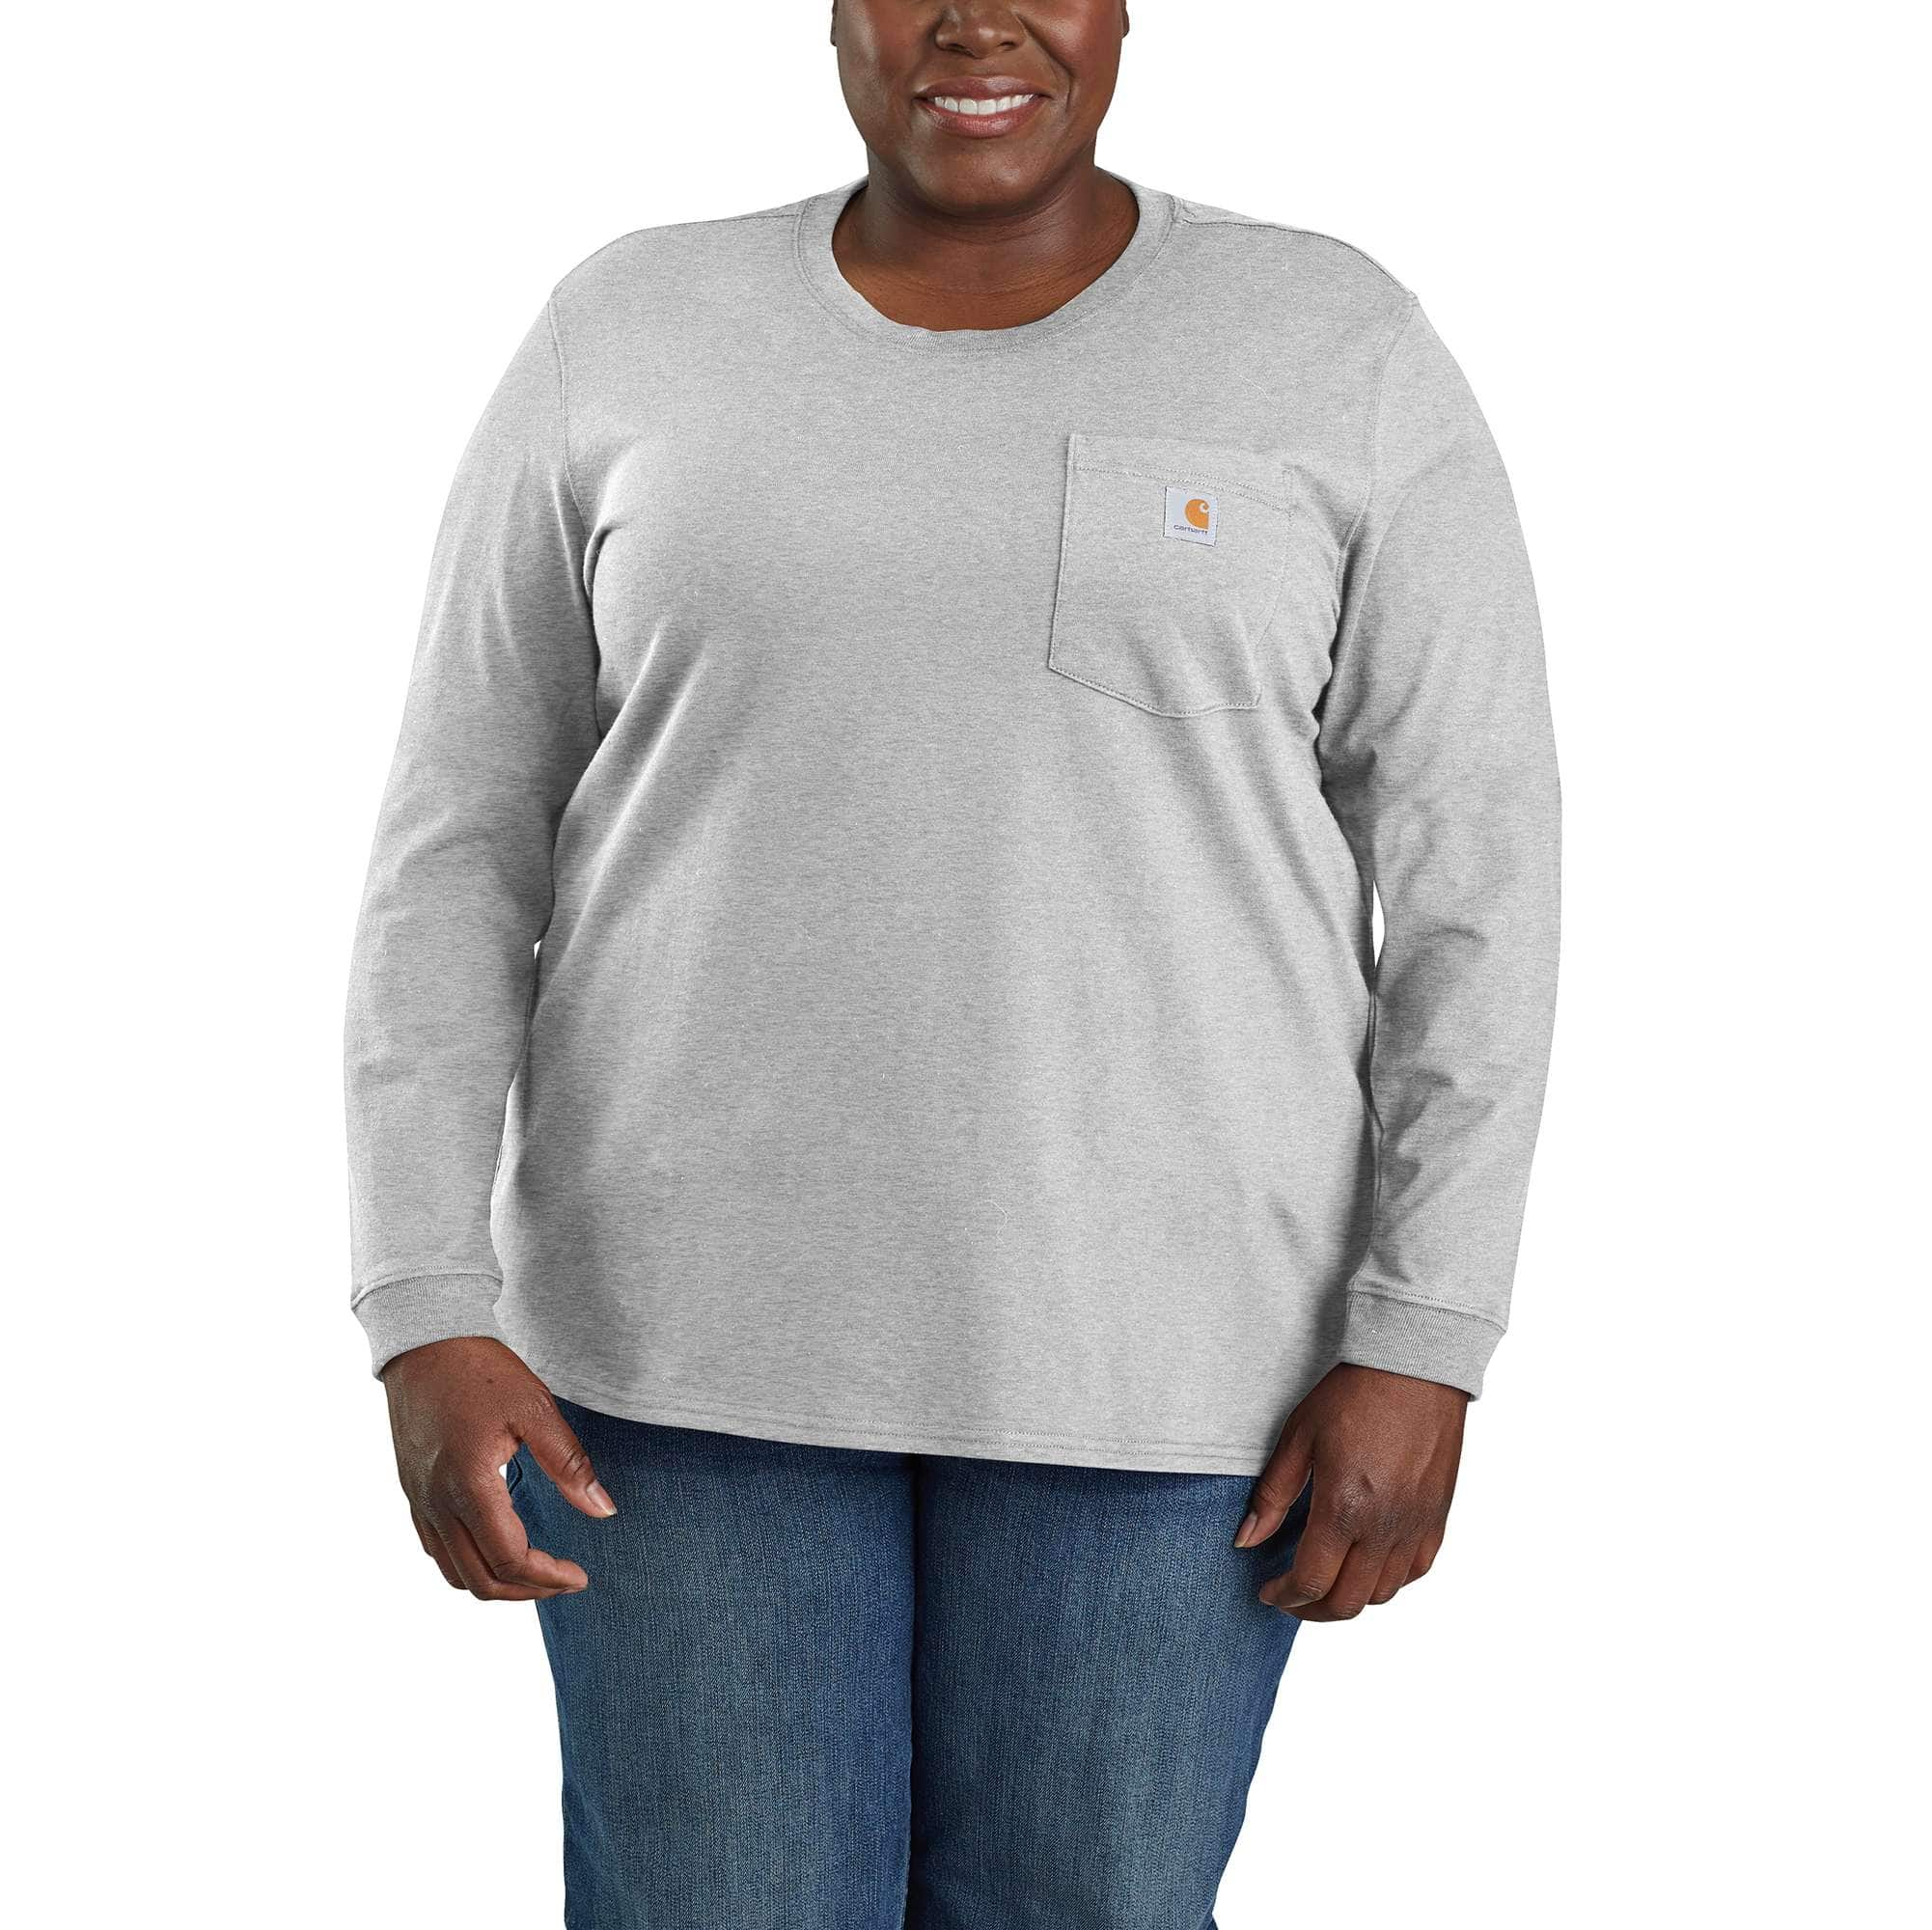 Picture of WK126 Workwear Pocket Long-Sleeve T-Shirt in Heather Gray